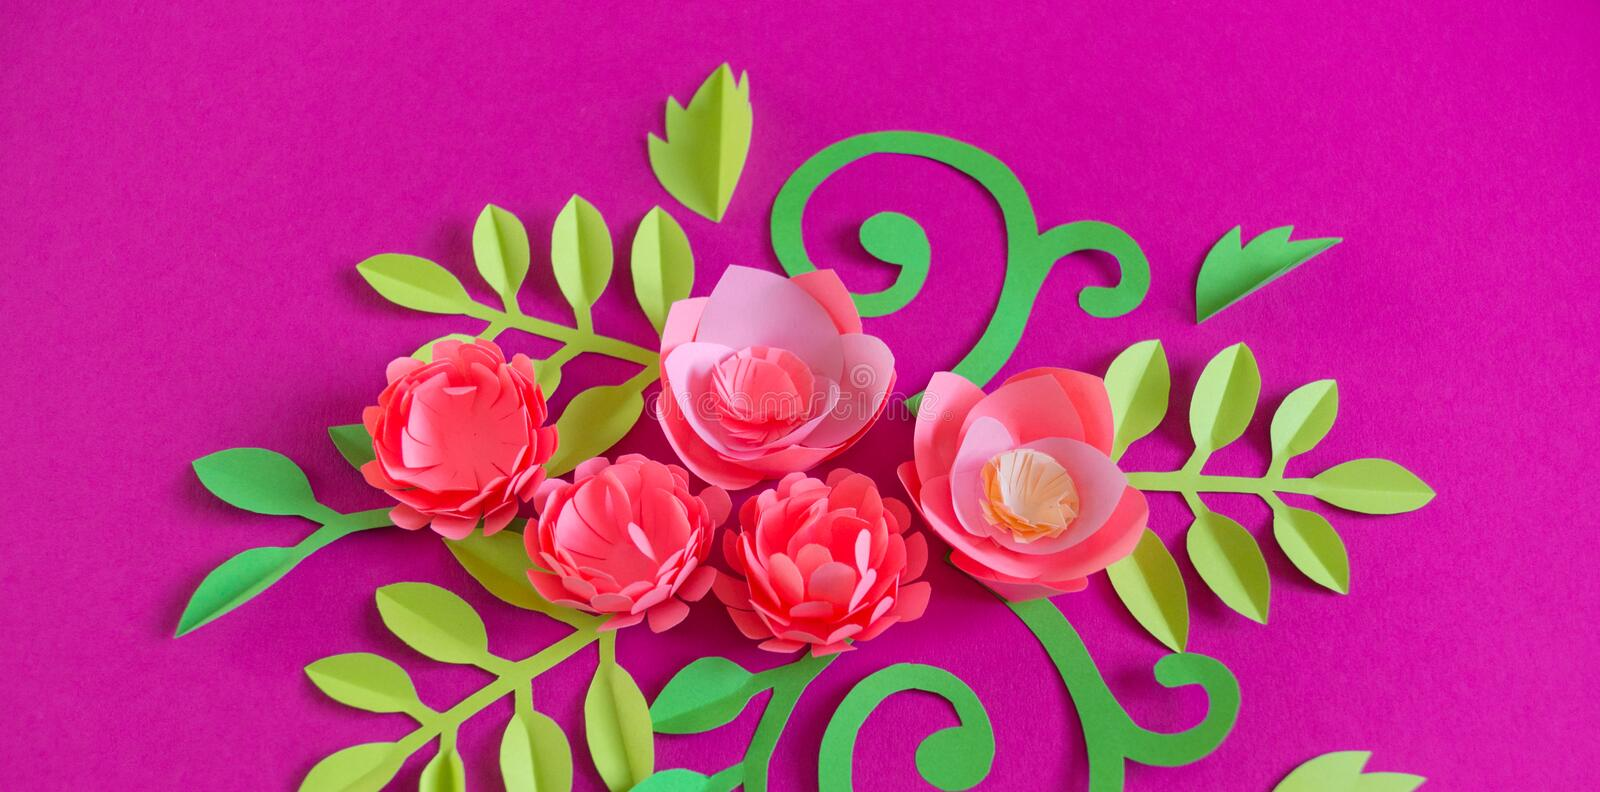 Flower made of paper pink background. Trend color pastel coral. Handwork is a favorite hobby. Florist salon advertising. Green tropical leaf and curl stock image